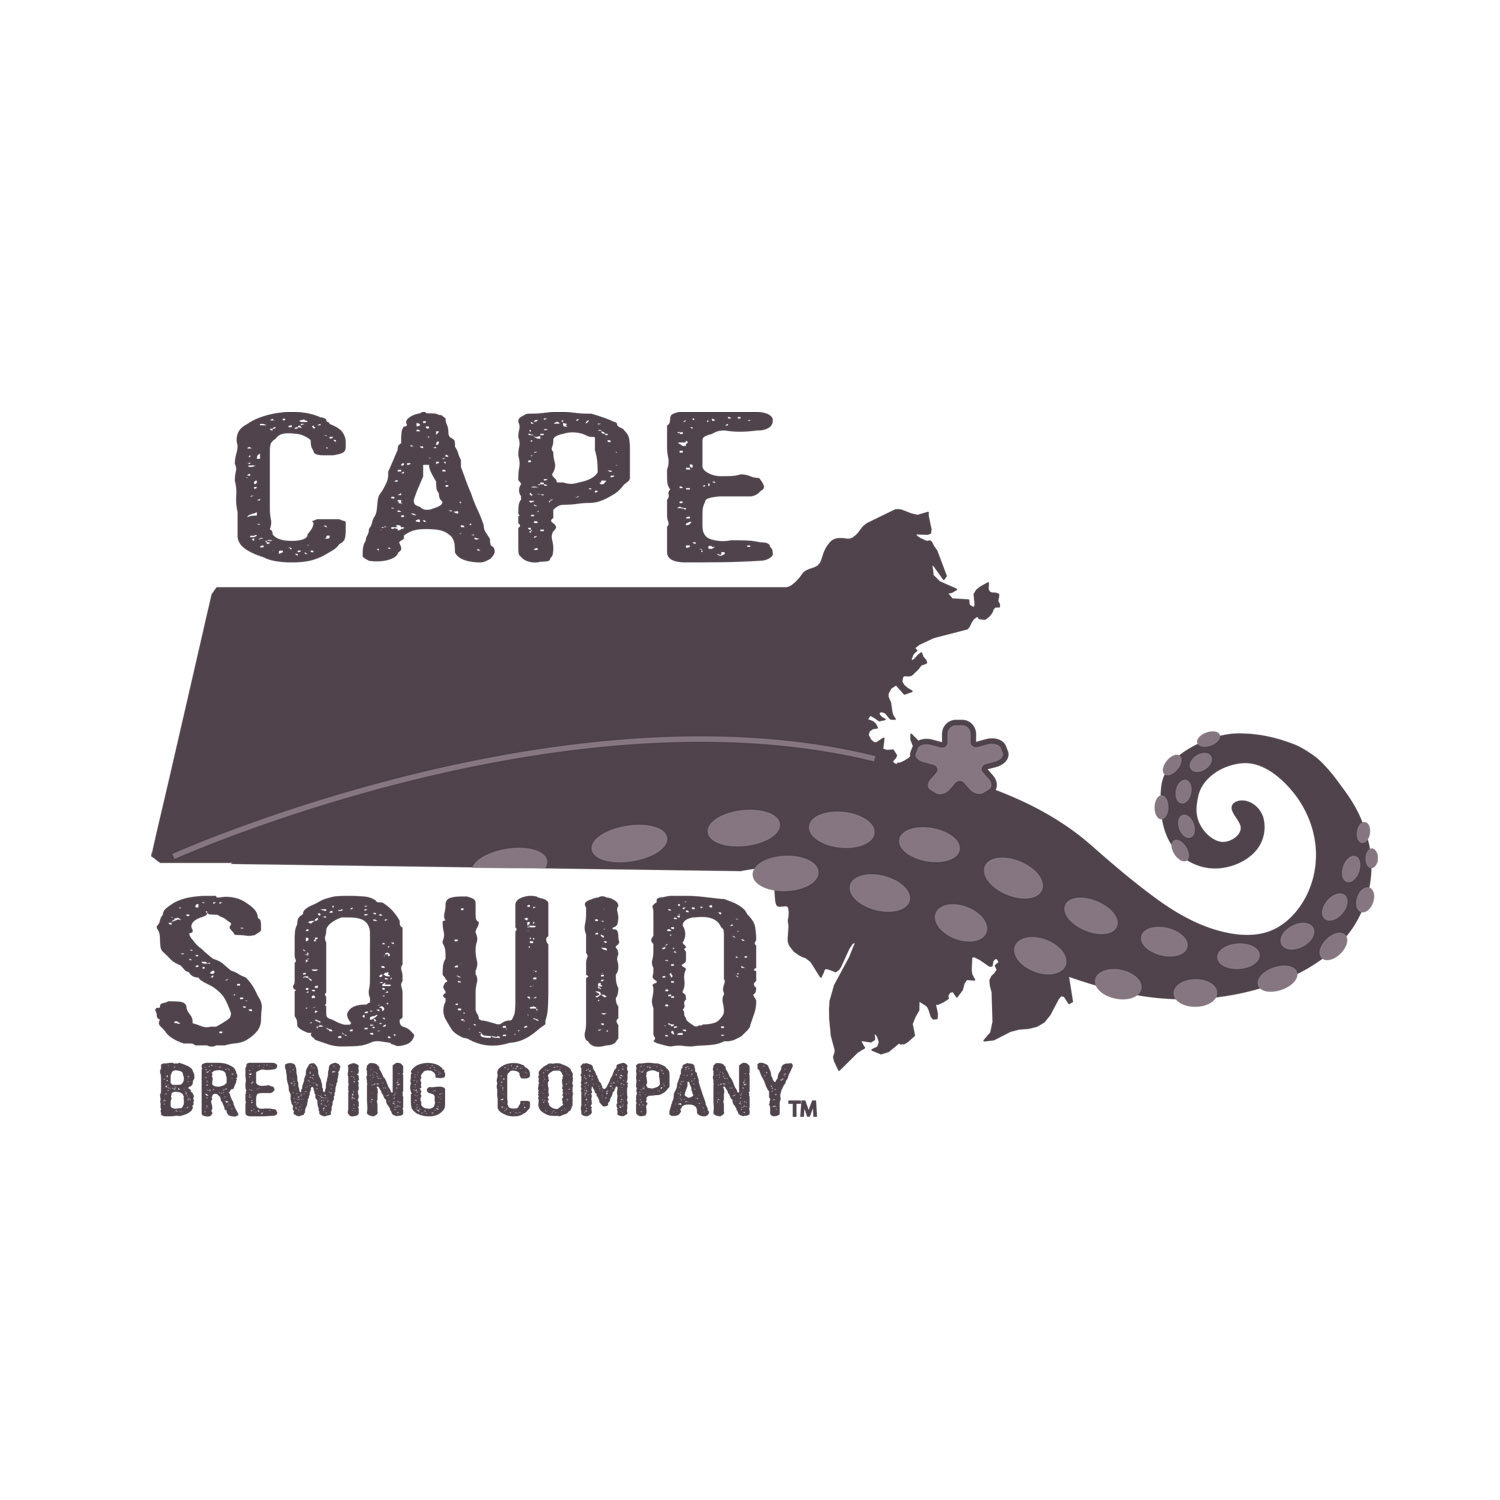 Cape Squid Brewing Company